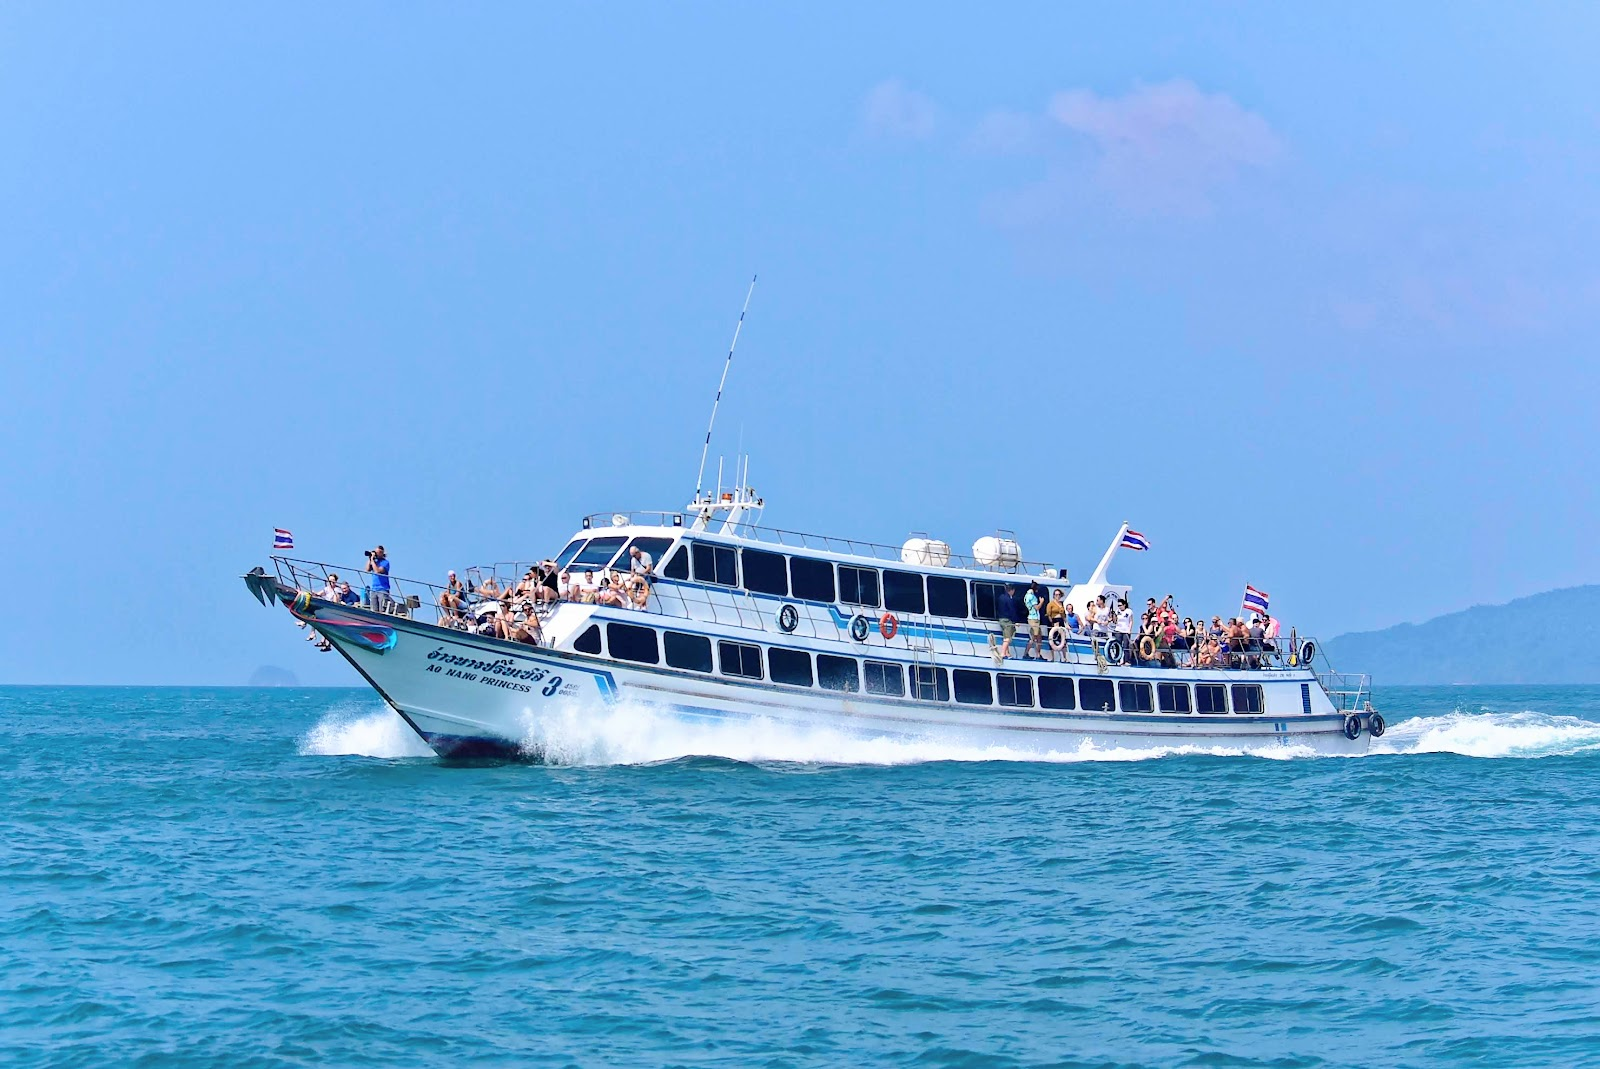 Day Tour from Phuket to 4 Islands around Krabi by Ferry and Speed Boat